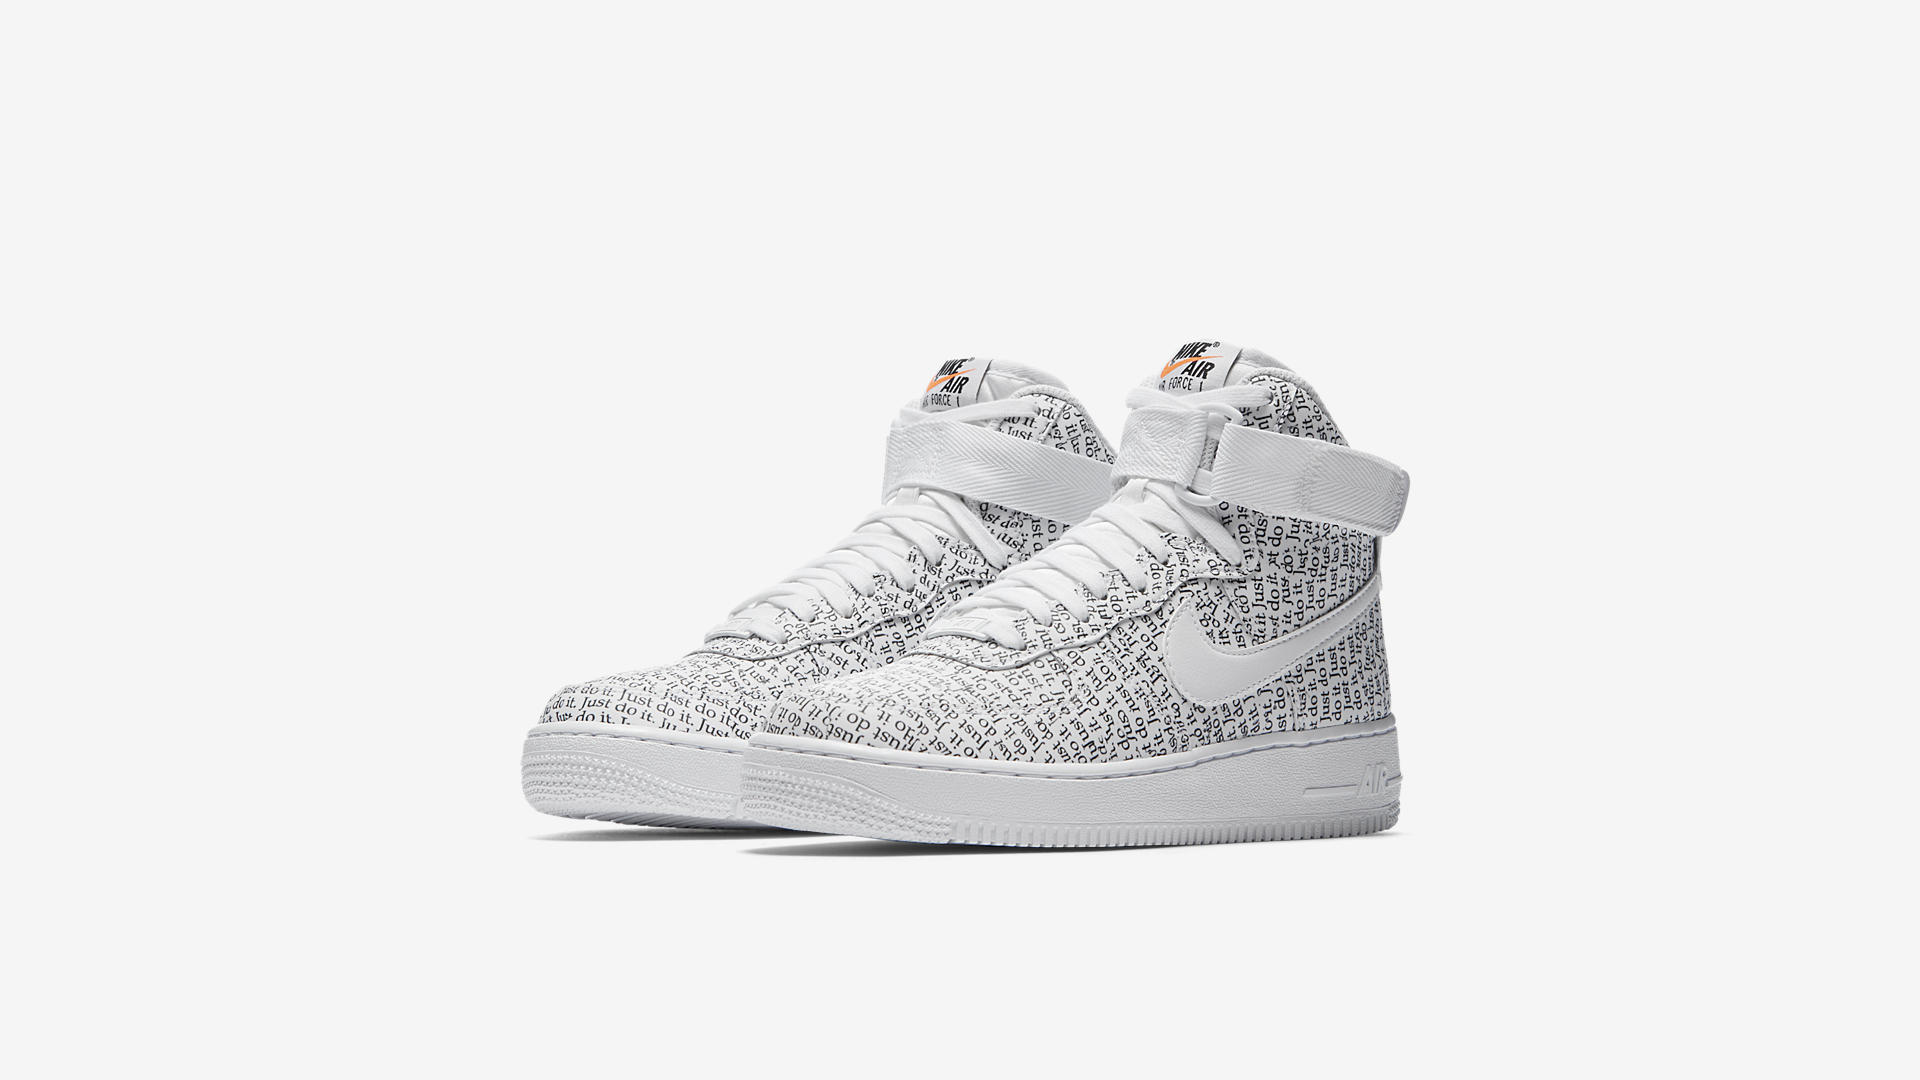 Nike Air Force High LX JDI White (AO5138-100)